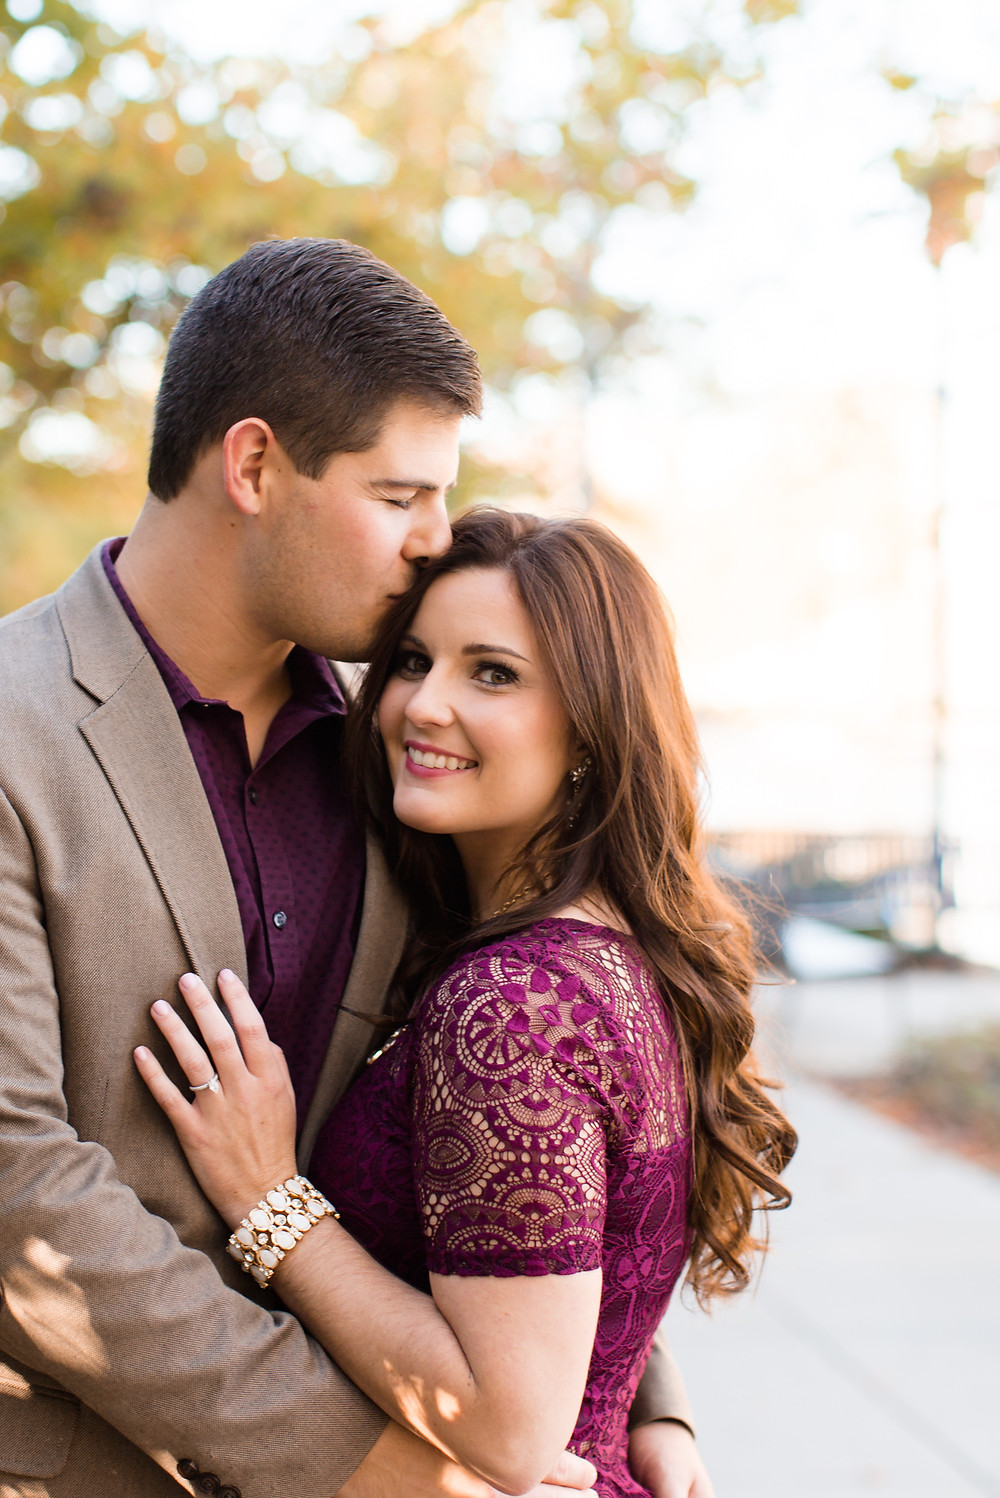 Romantic engagement pictures